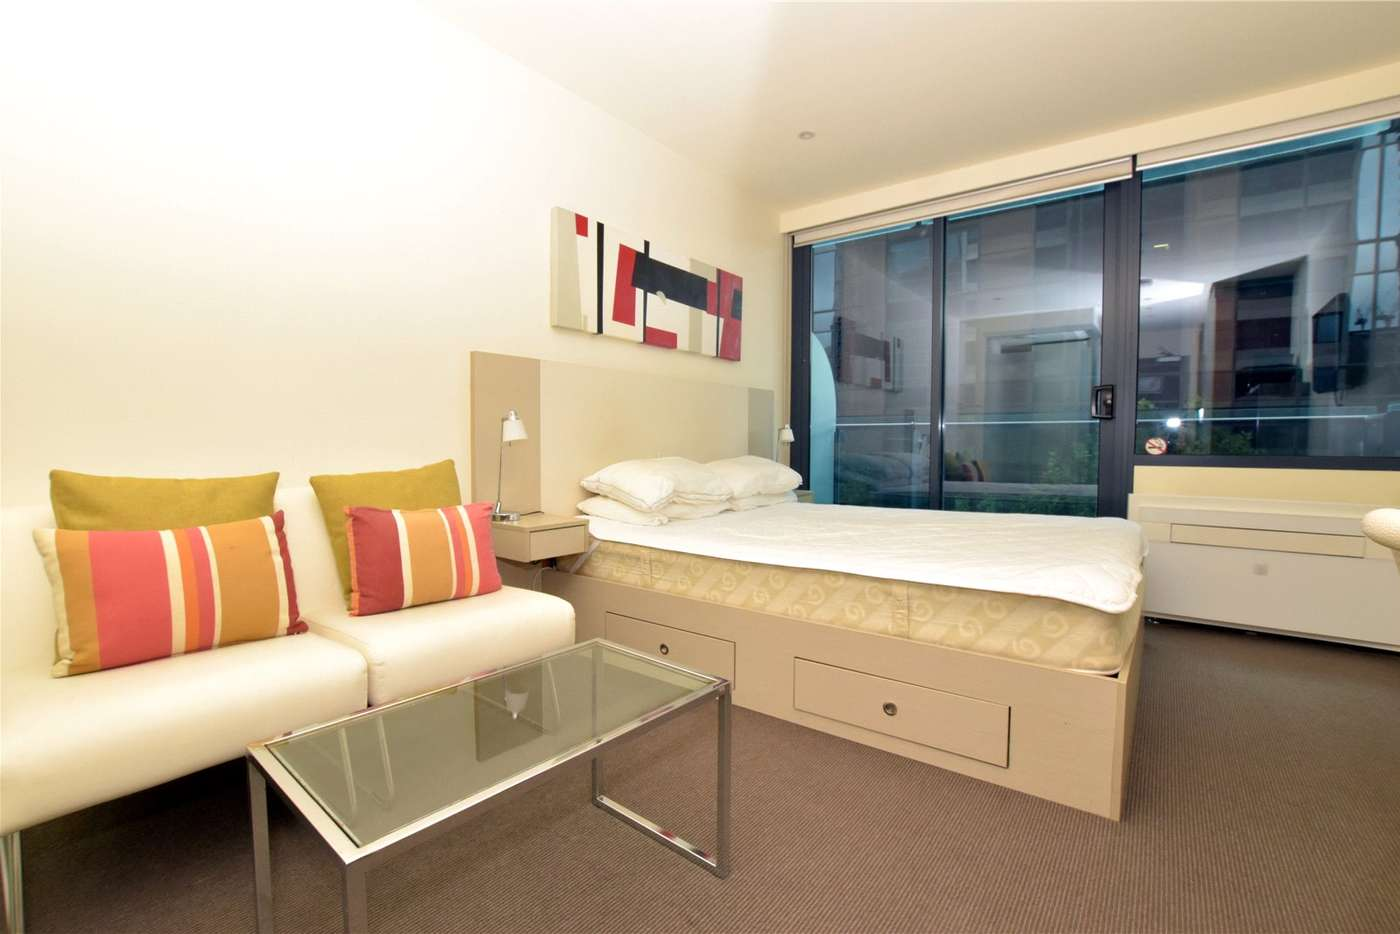 Main view of Homely studio listing, 504/181 ABeckett Street, Melbourne VIC 3000